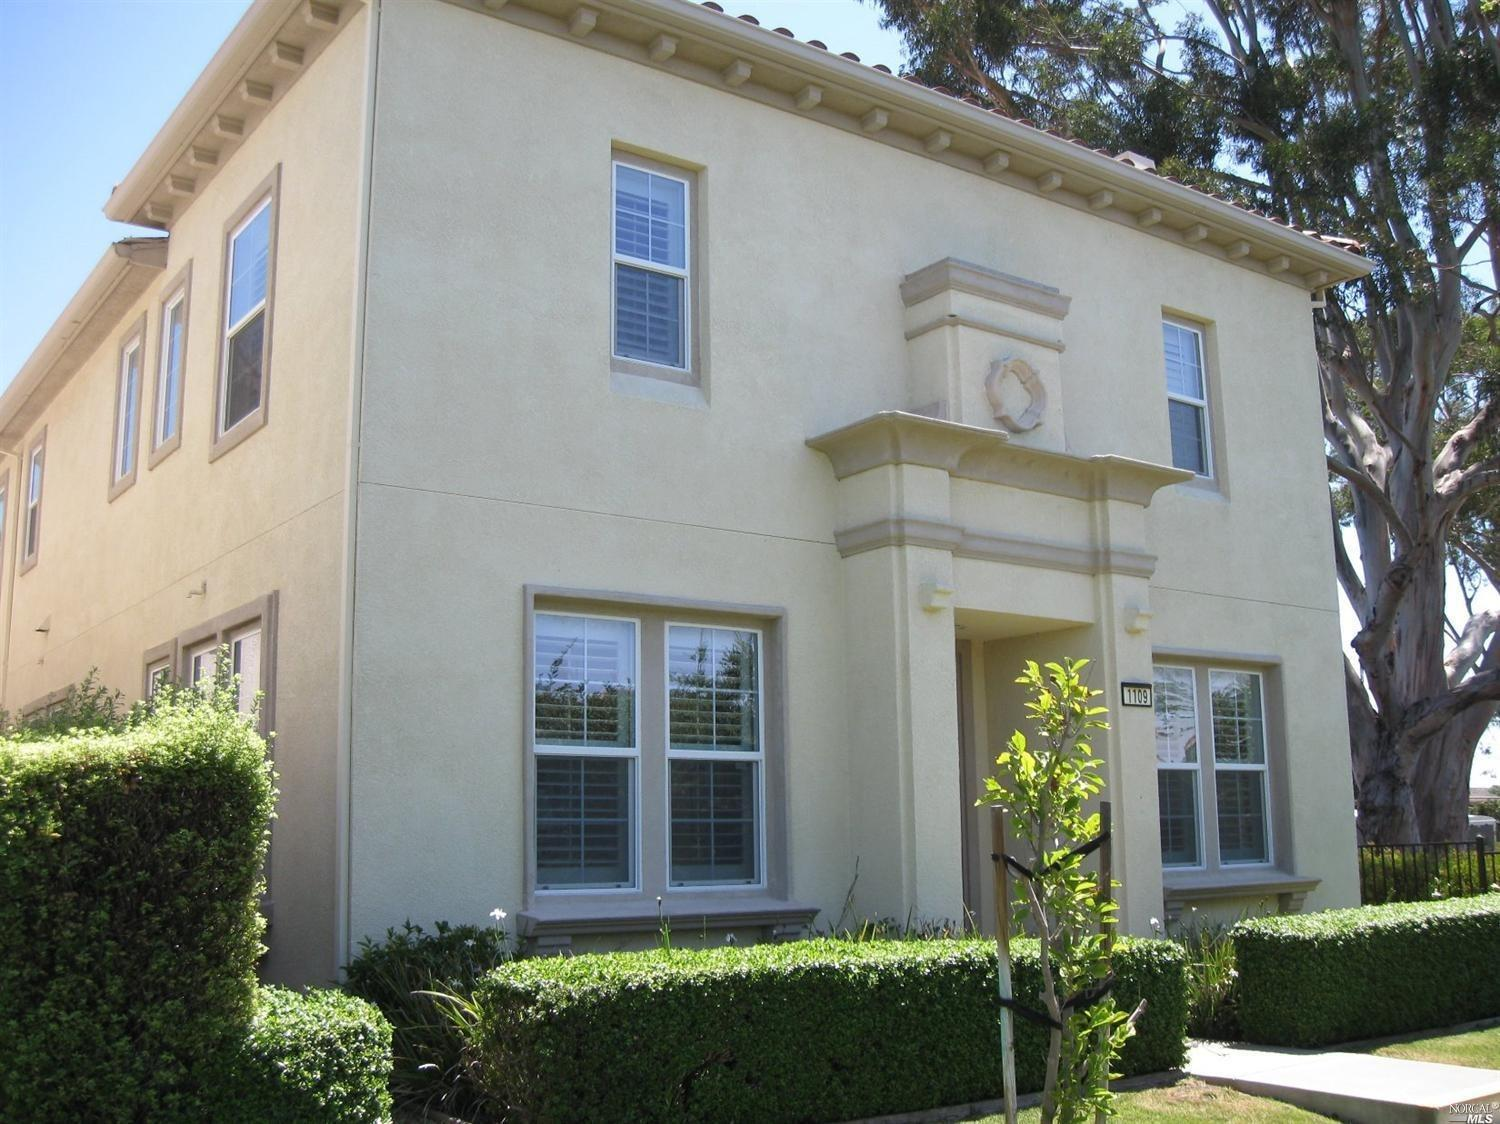 Exceptional Mare Island 4 bedroom, 2.5 bath former Model Home! This home offers a living room with f